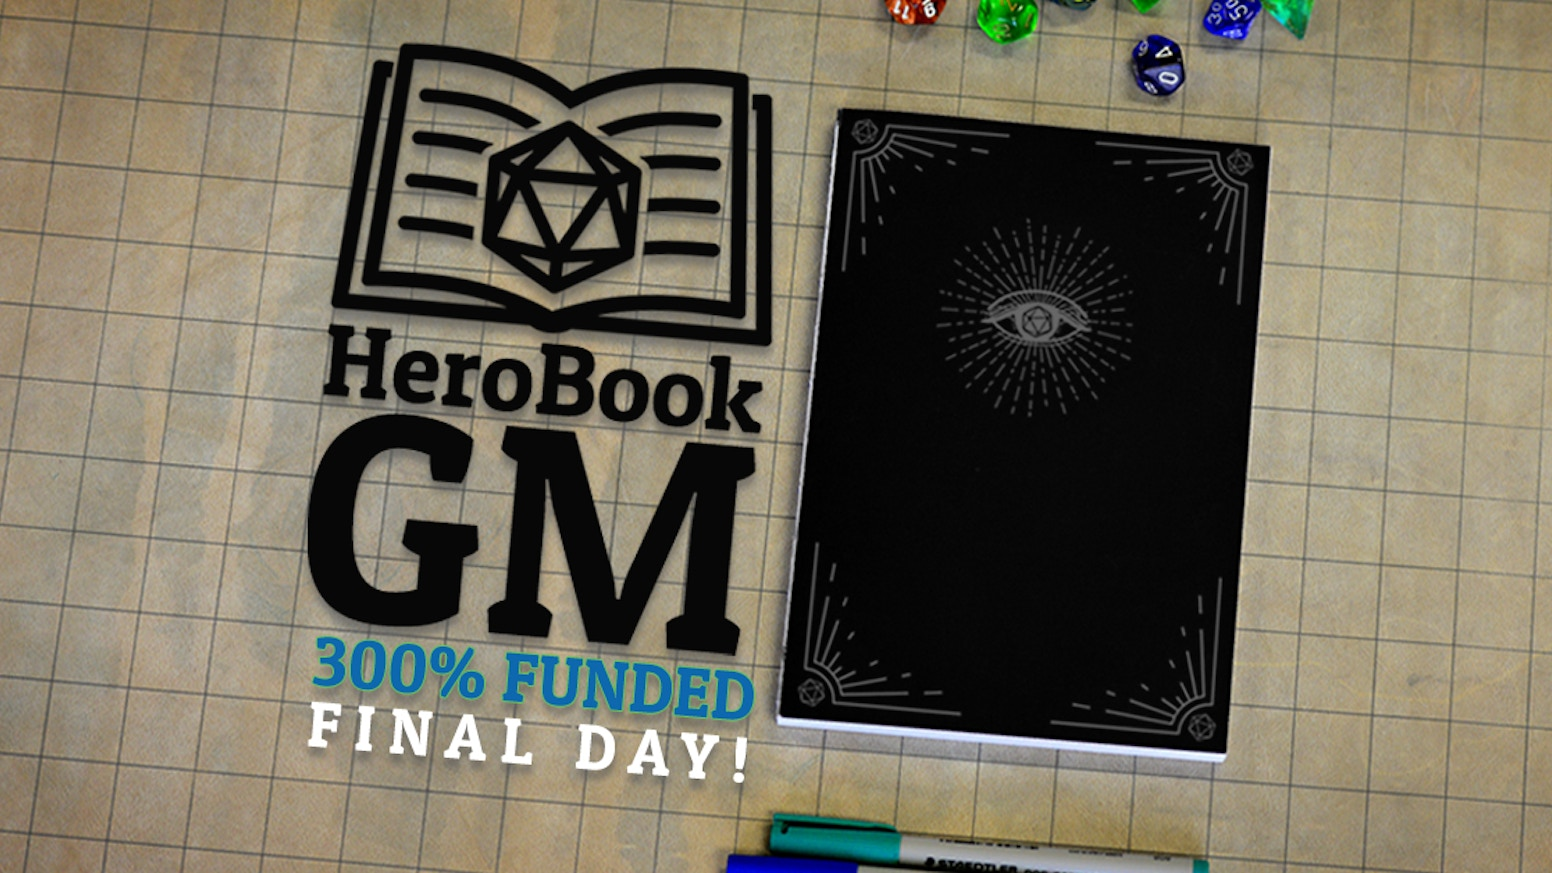 HeroBook GM is the ultimate toolkit for 5E game masters, with a reusable party tracker and tons of resources in a deluxe notebook.